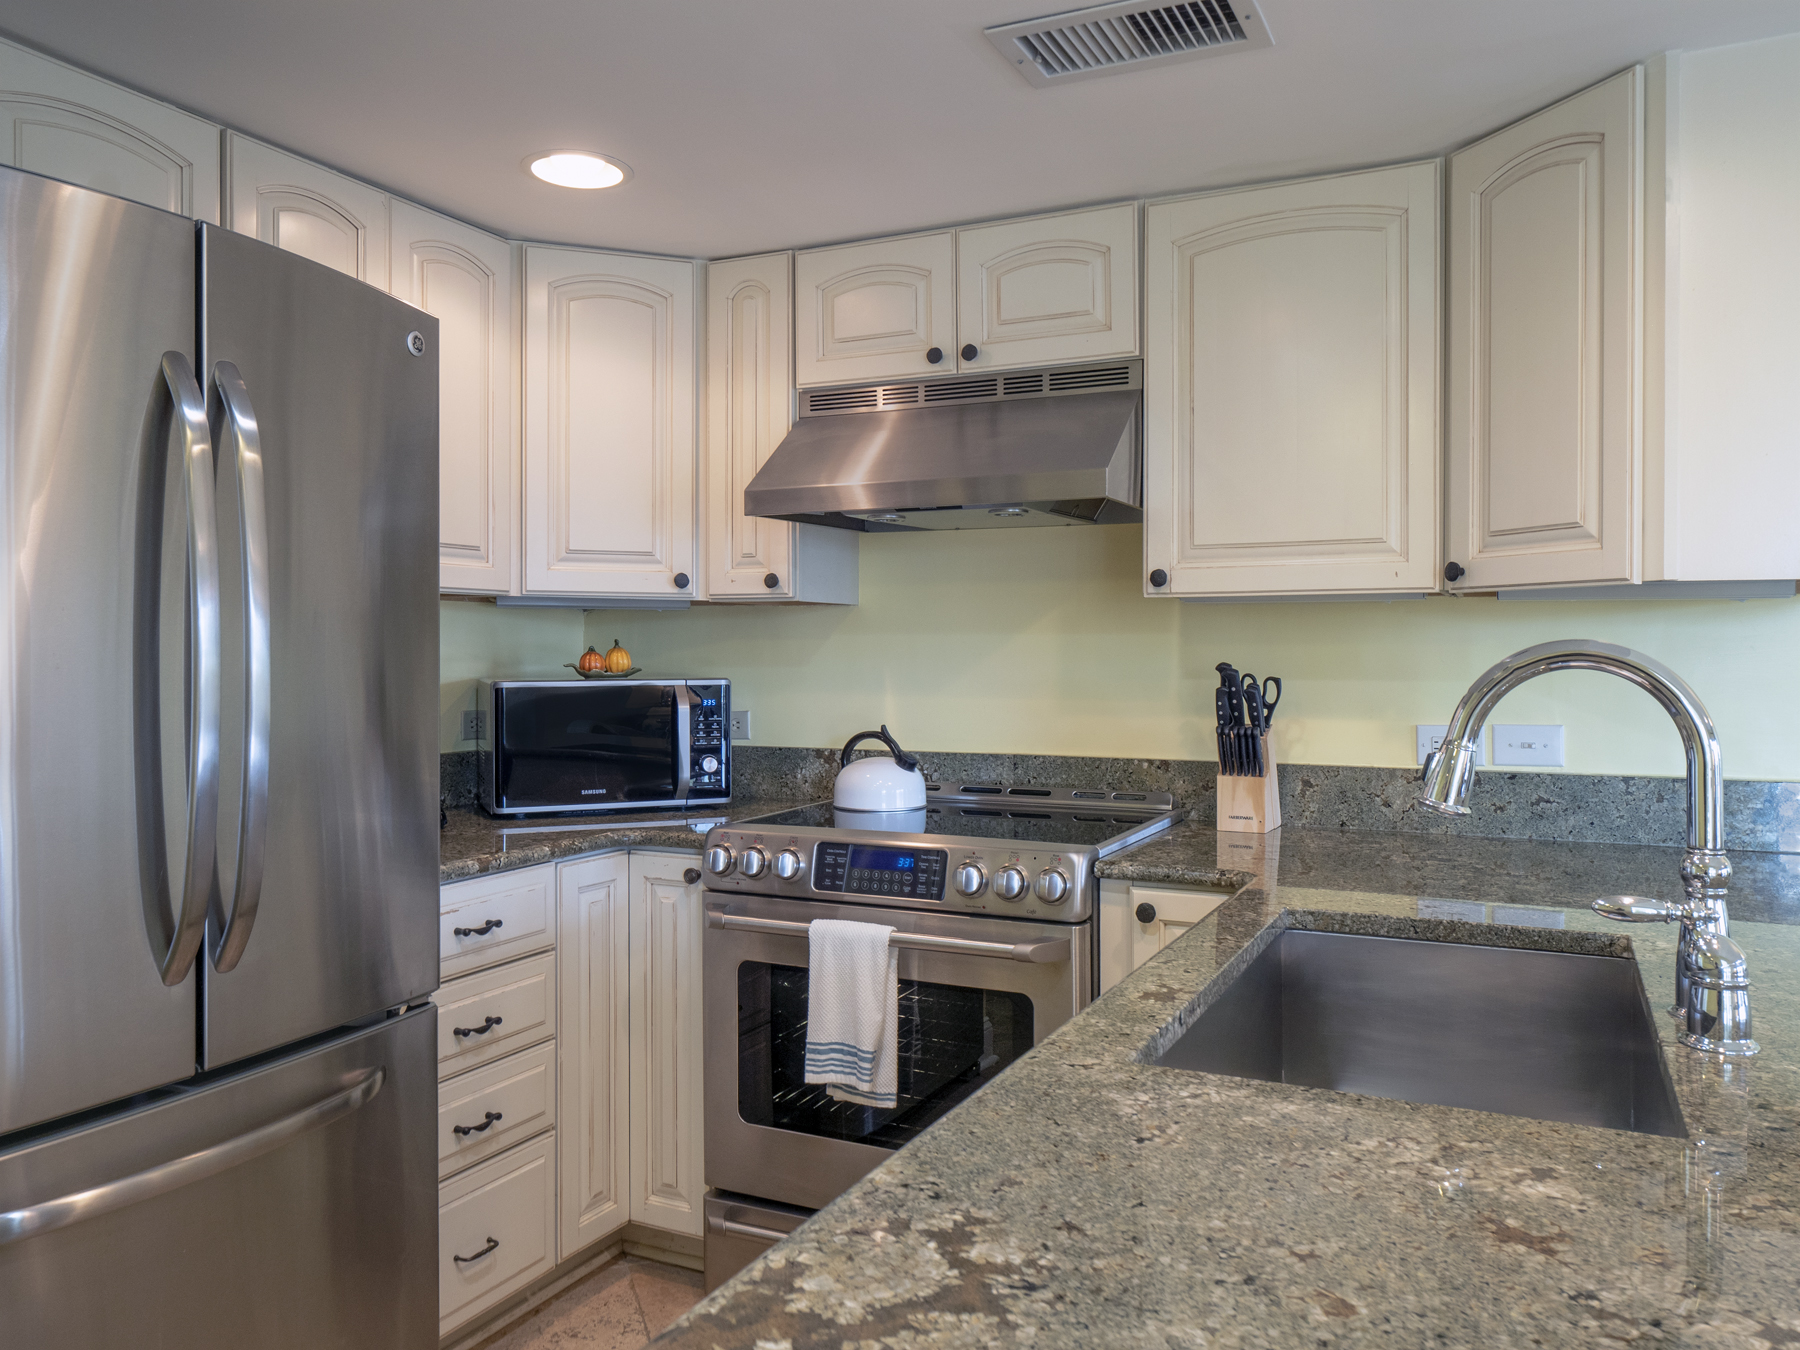 Beautifully fully stocked and updated kitchen